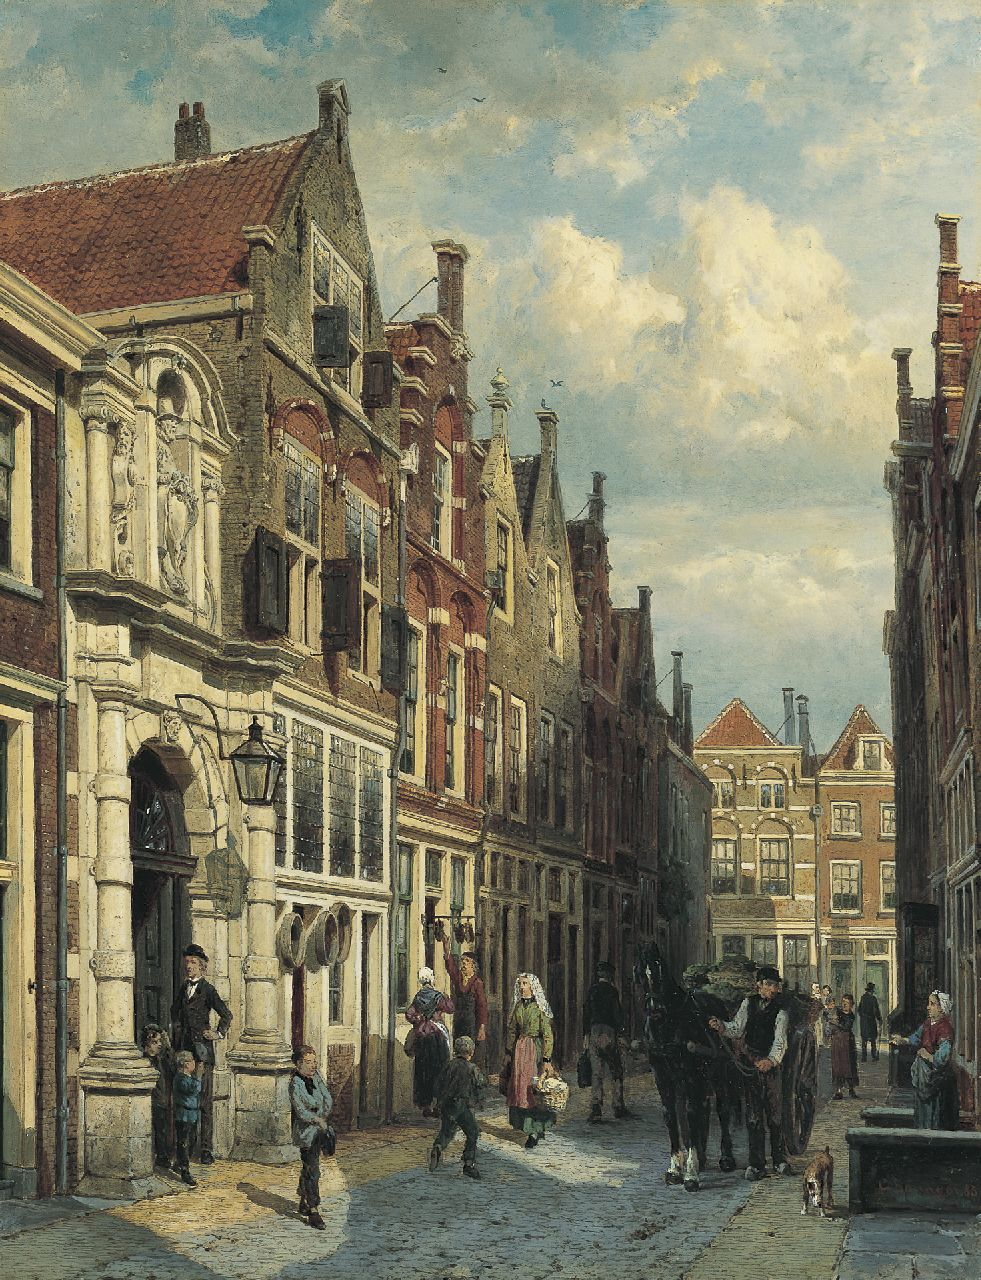 Springer C.  | Cornelis Springer, View of the Vriesestraat, with the Gemeenteschool, Dordrecht, oil on panel 52.1 x 40.4 cm, signed l.r. and dated 1885 on the reverse